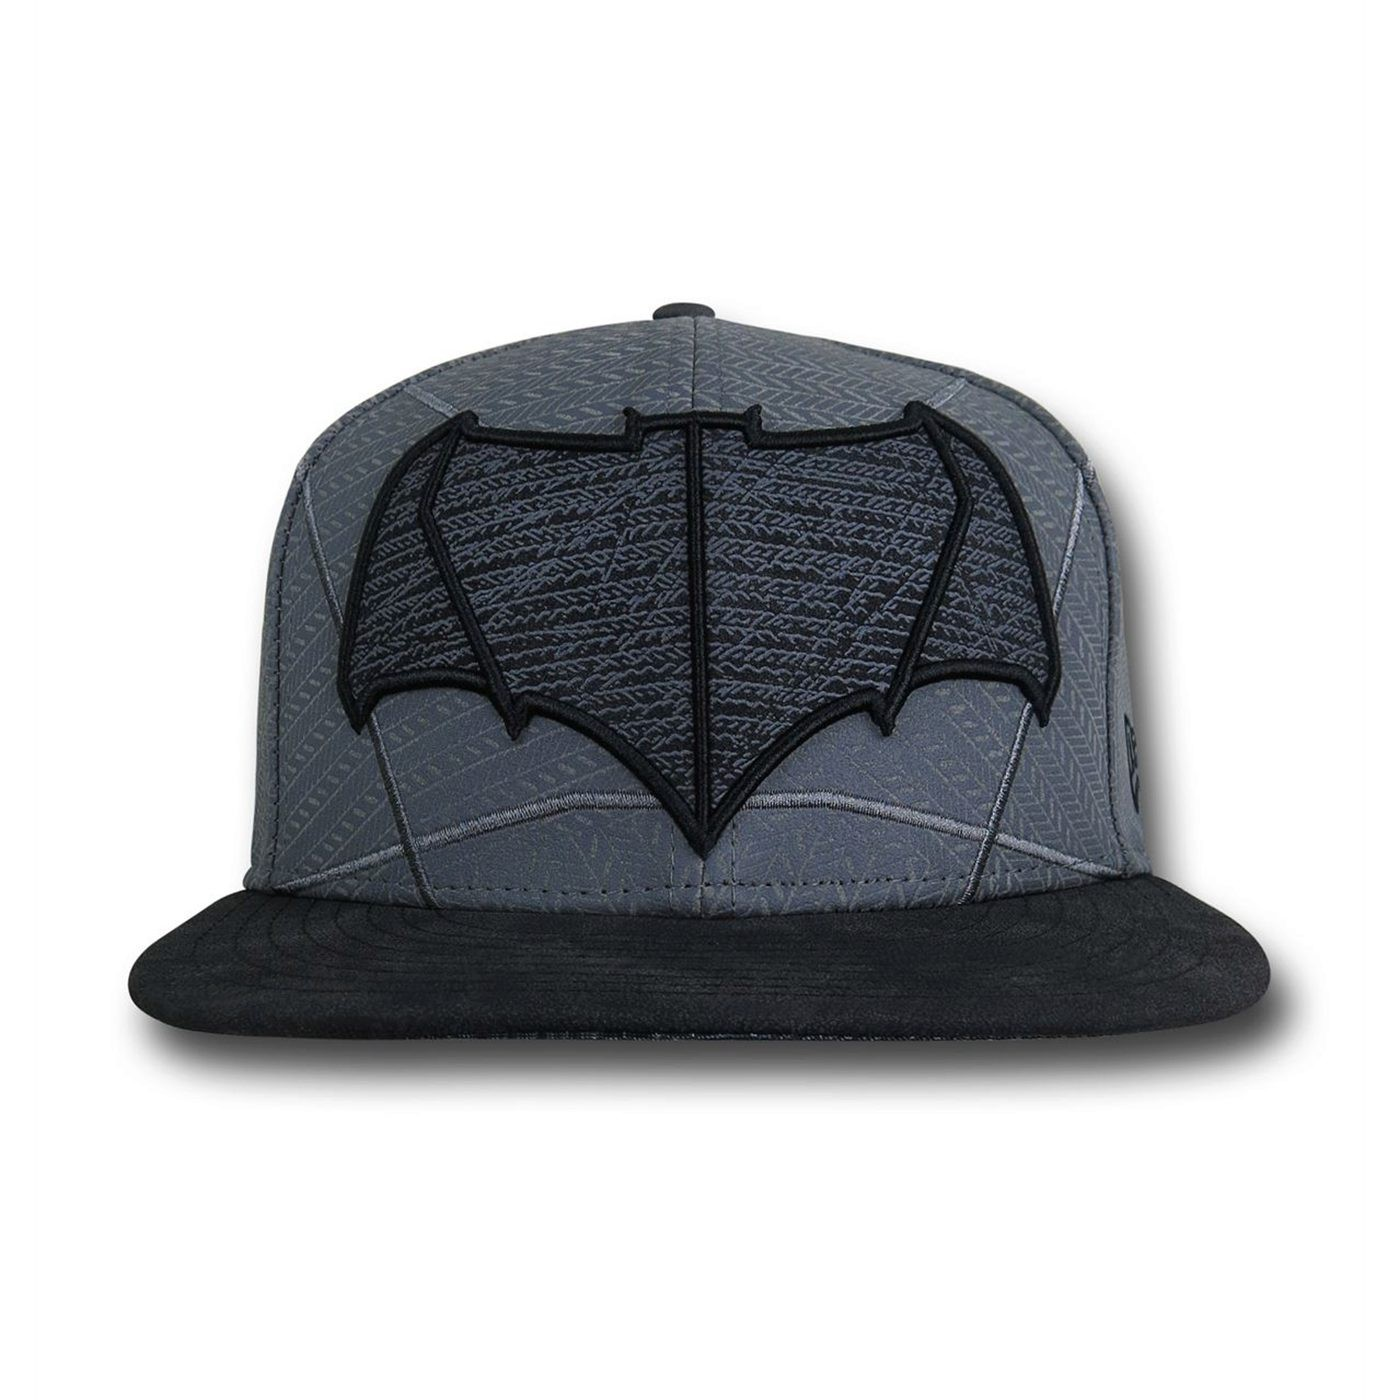 Batman Vs Superman Bat Symbol 59Fifty Hat